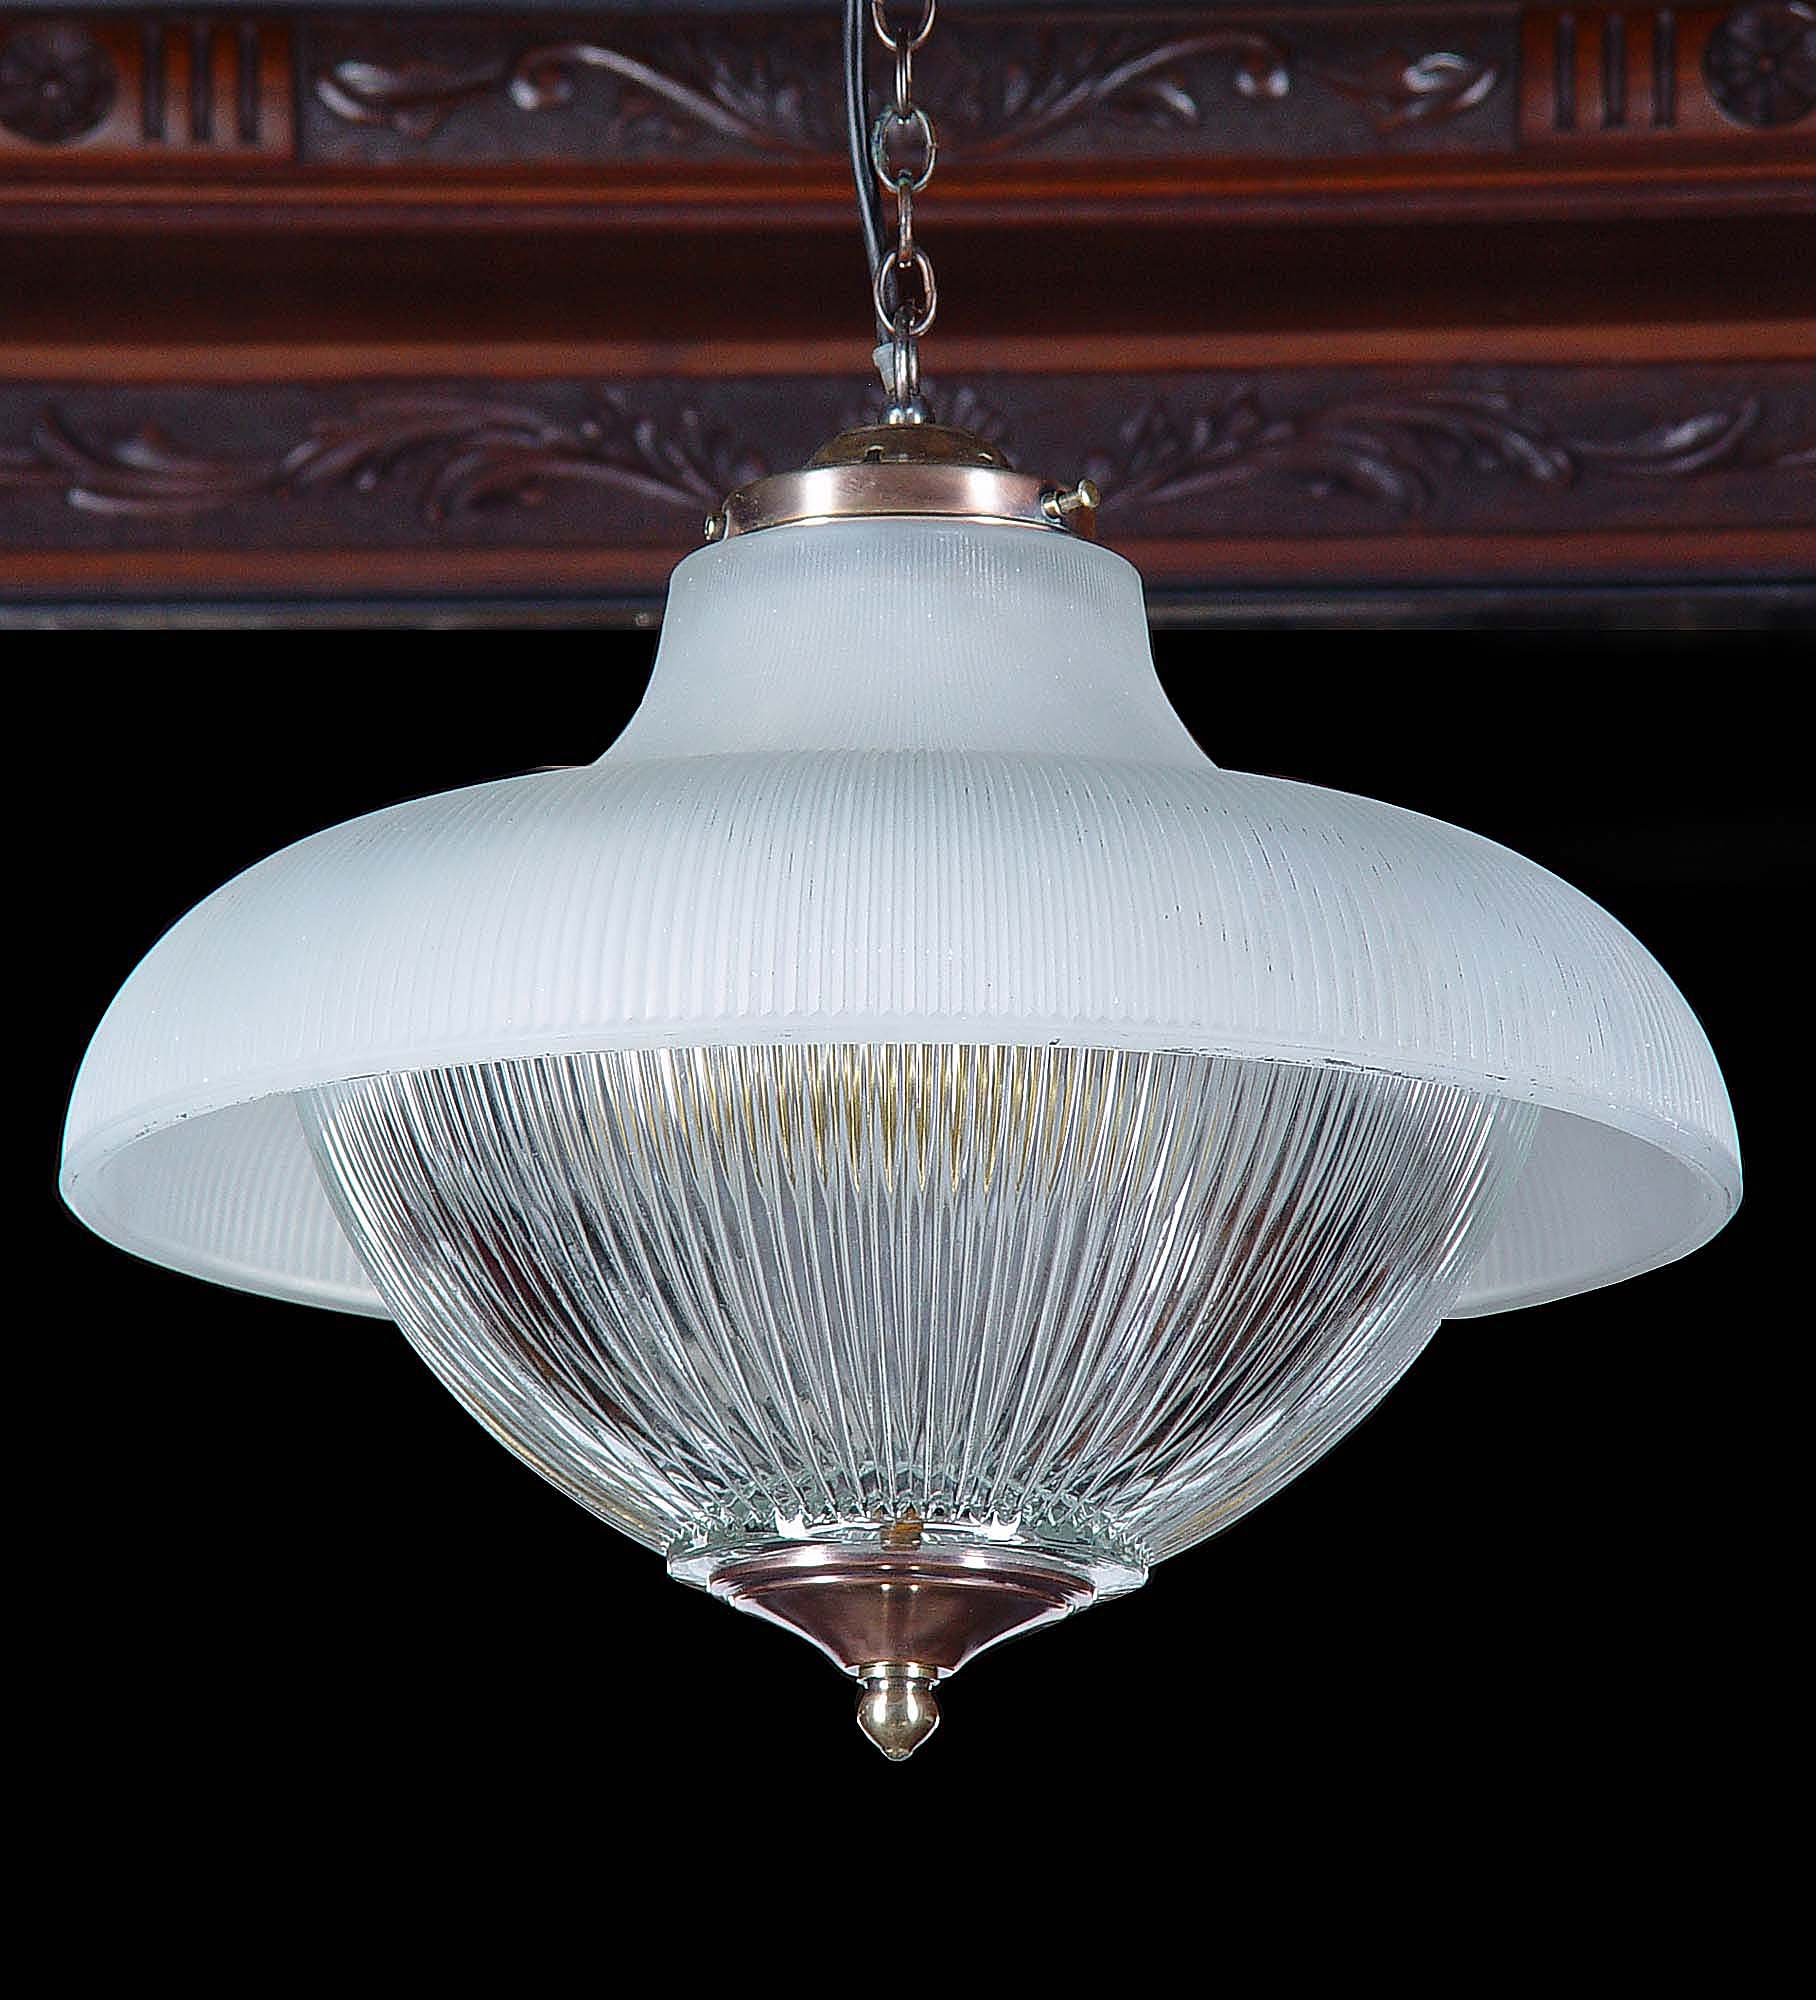 Wiring A Ceiling Light Fixture Uk New Soletcshat Image Informasi